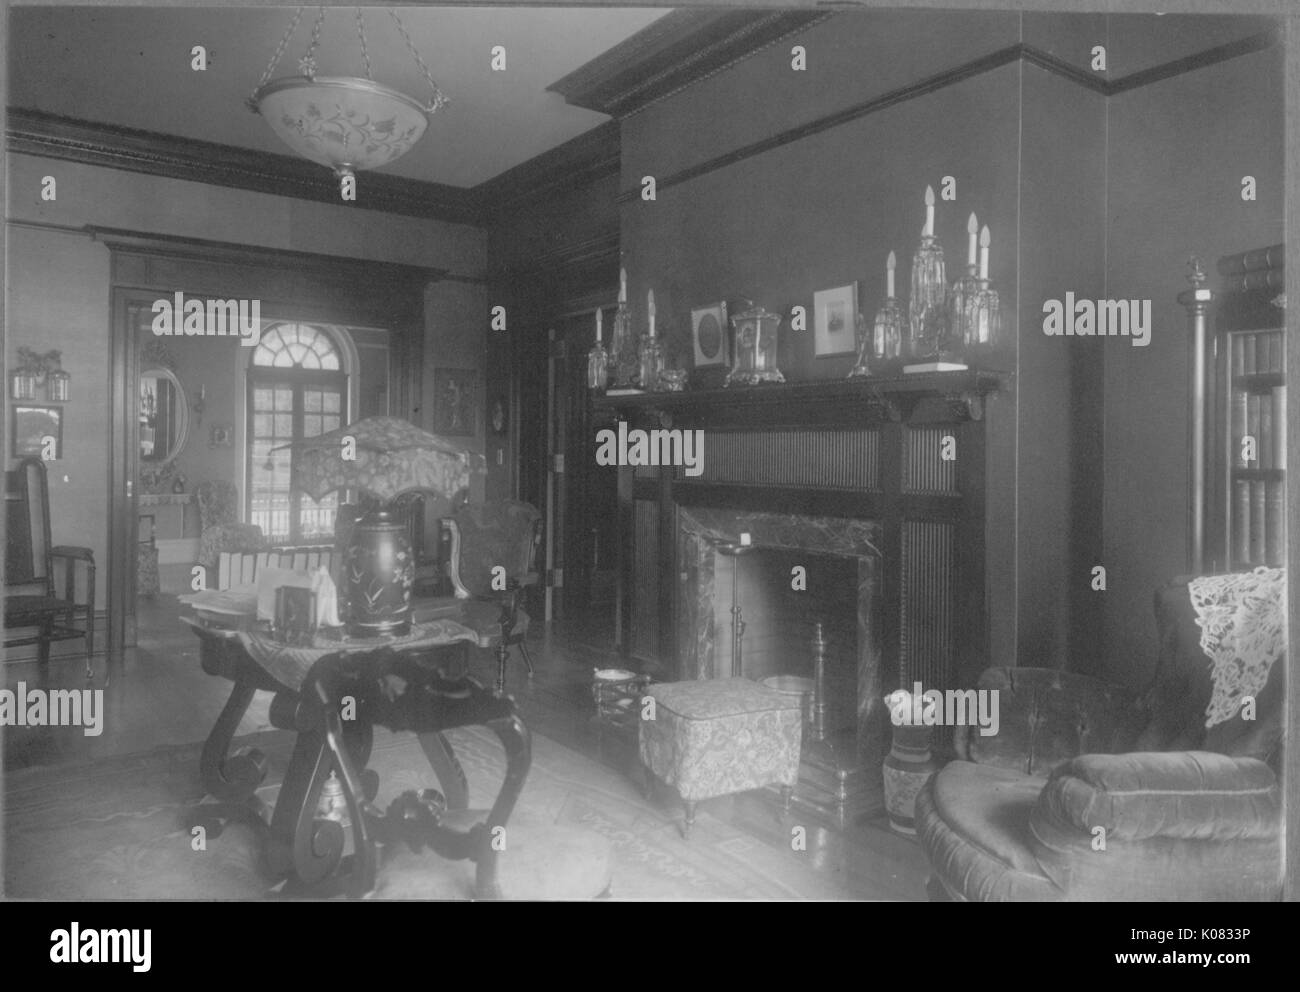 Sitting area of a house with an decorated ceiling lamp, mantelpiece with various candle-holders, a decorative ottoman in front of the fireplace, a wooden able with a lamp in the center of the room sitting atop a carpet, an armchair with a lace overthrow; Roland Park/Guilford, 1910. This image is from a series documenting the construction and sale of homes in the Roland Park/Guilford neighborhood of Baltimore, a streetcar suburb and one of the first planned communities in the United States. - Stock Image